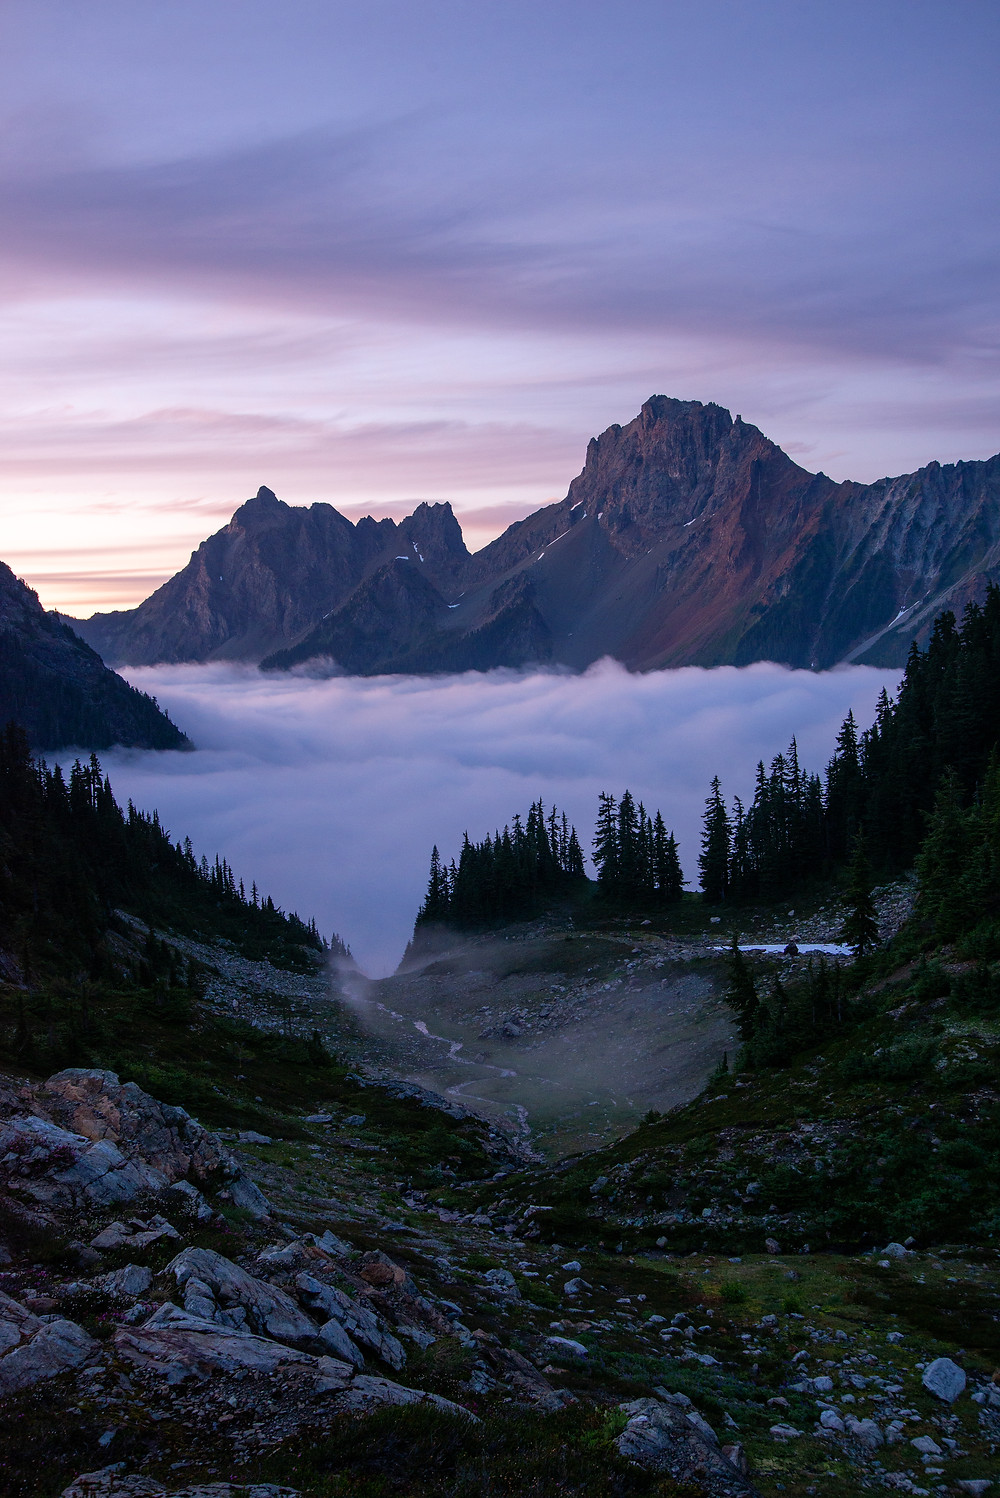 Clouds fill the valley below American Border Peak and Canadian Border Peak in the Mount Baker Wilderness in Washington.